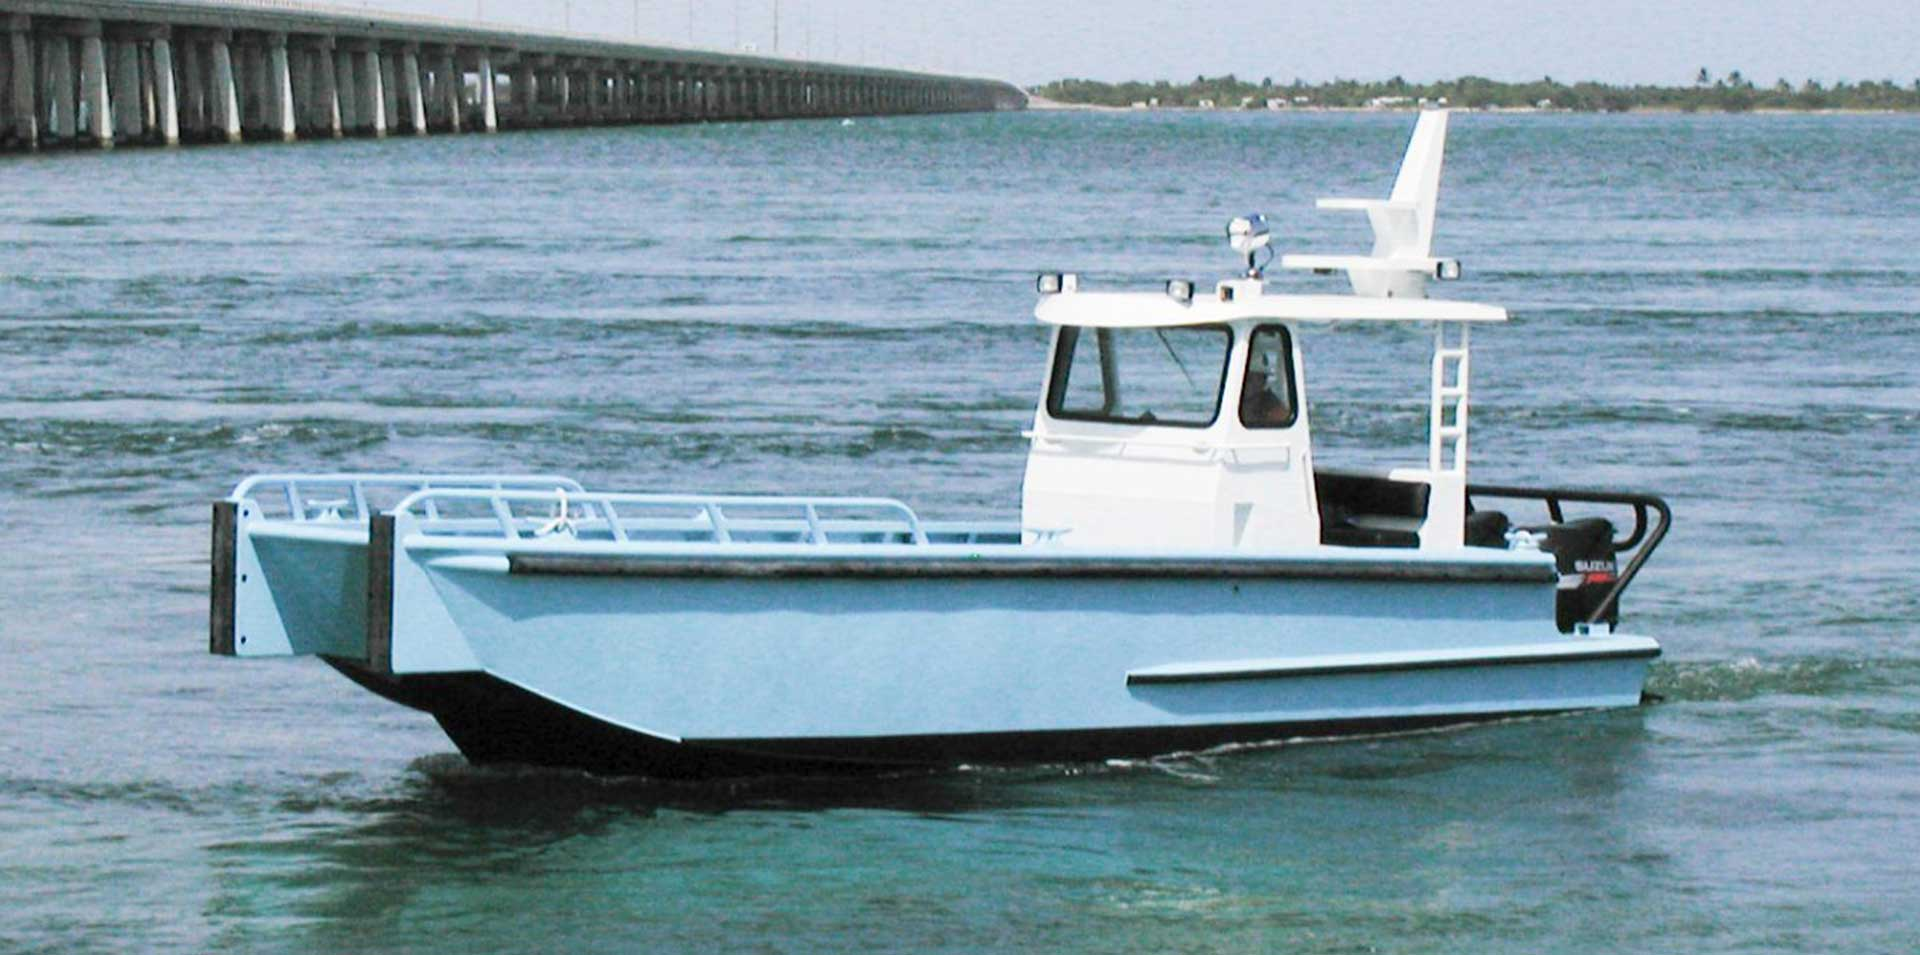 Silver Ships Explorer Series boat with pilothouse